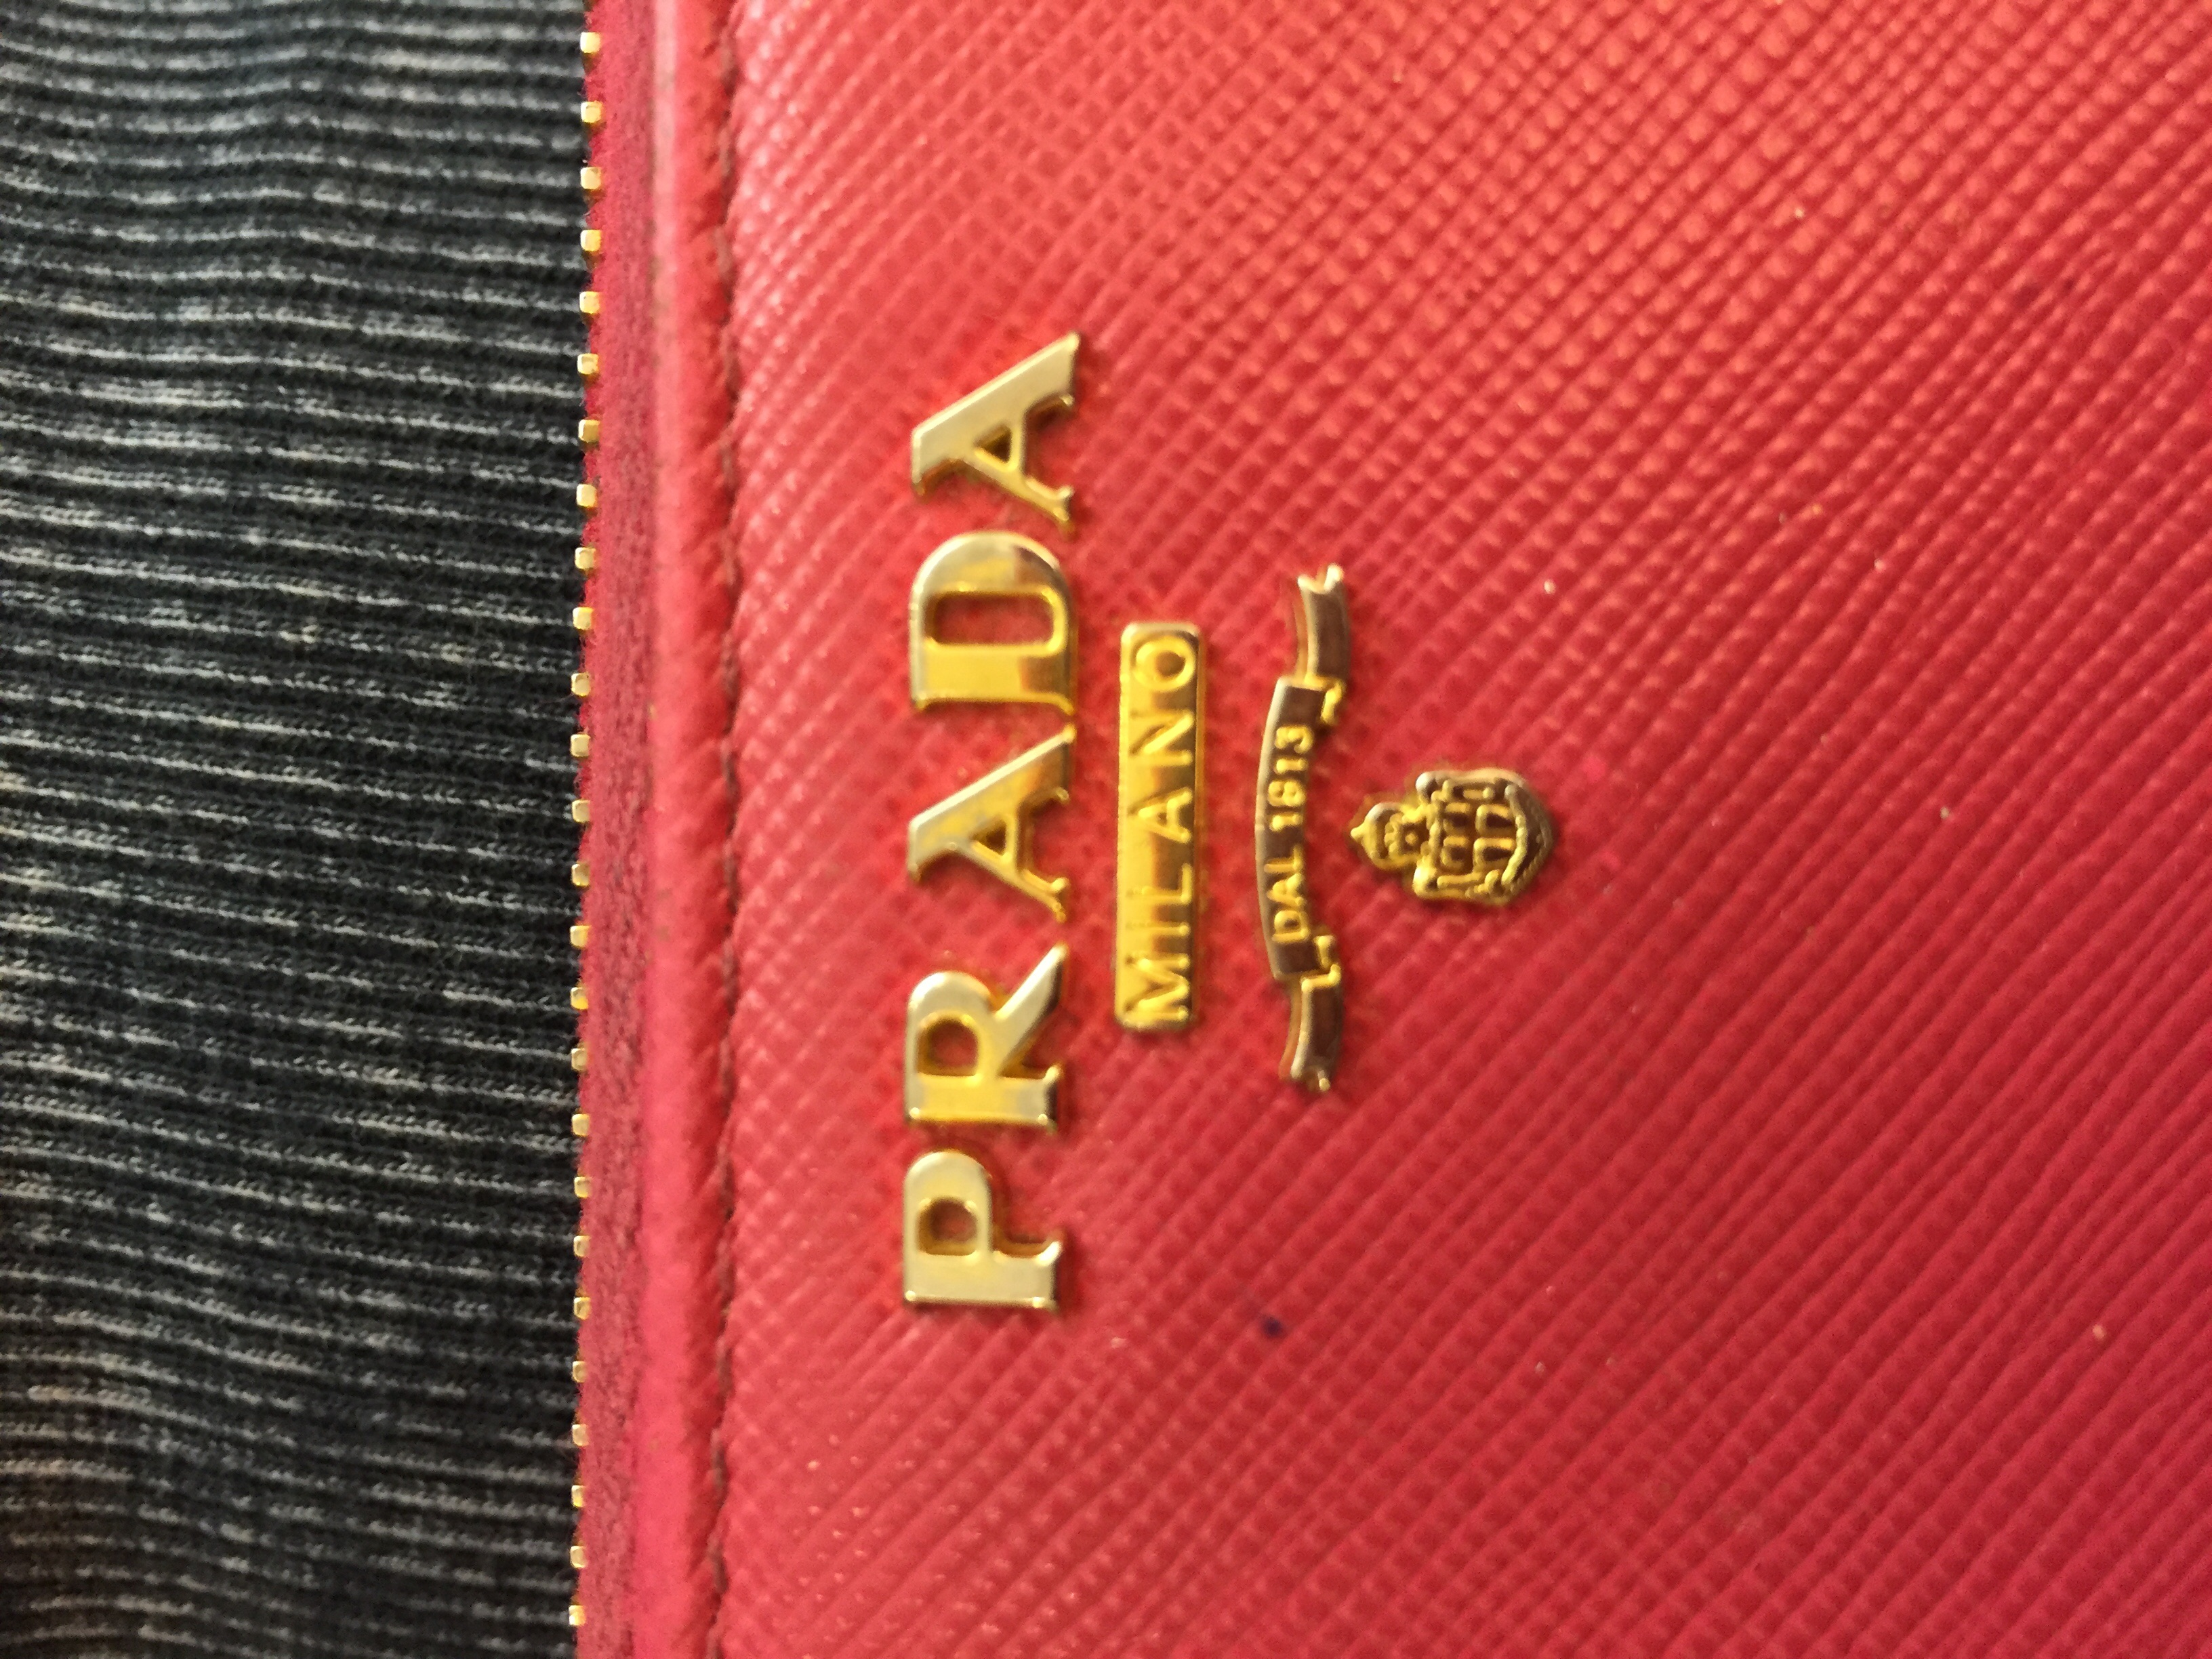 prada fake bags - Prada Bag Authentication Using Logos | Lollipuff